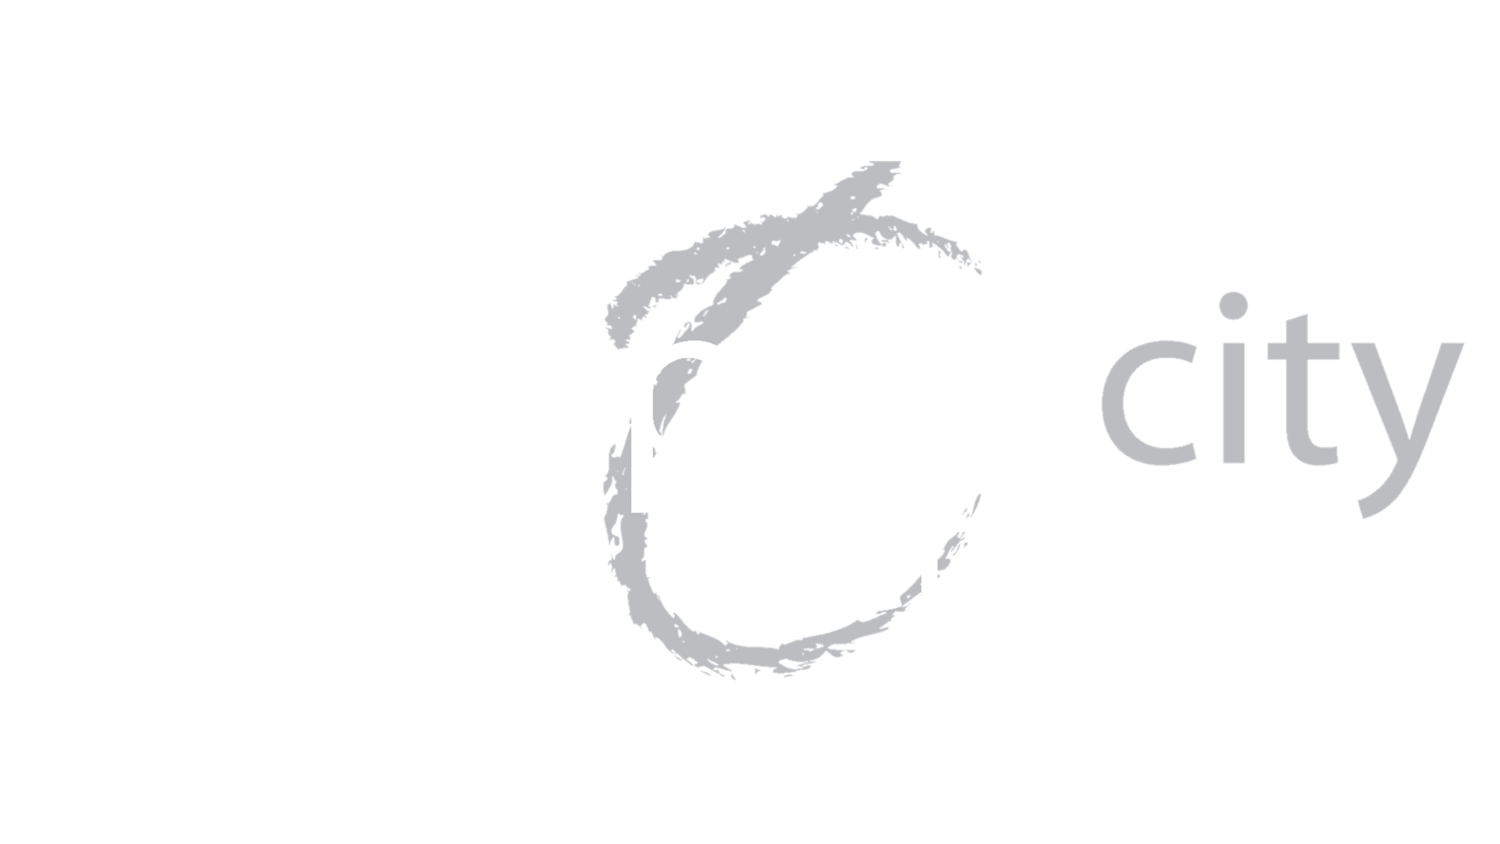 Champion City Church